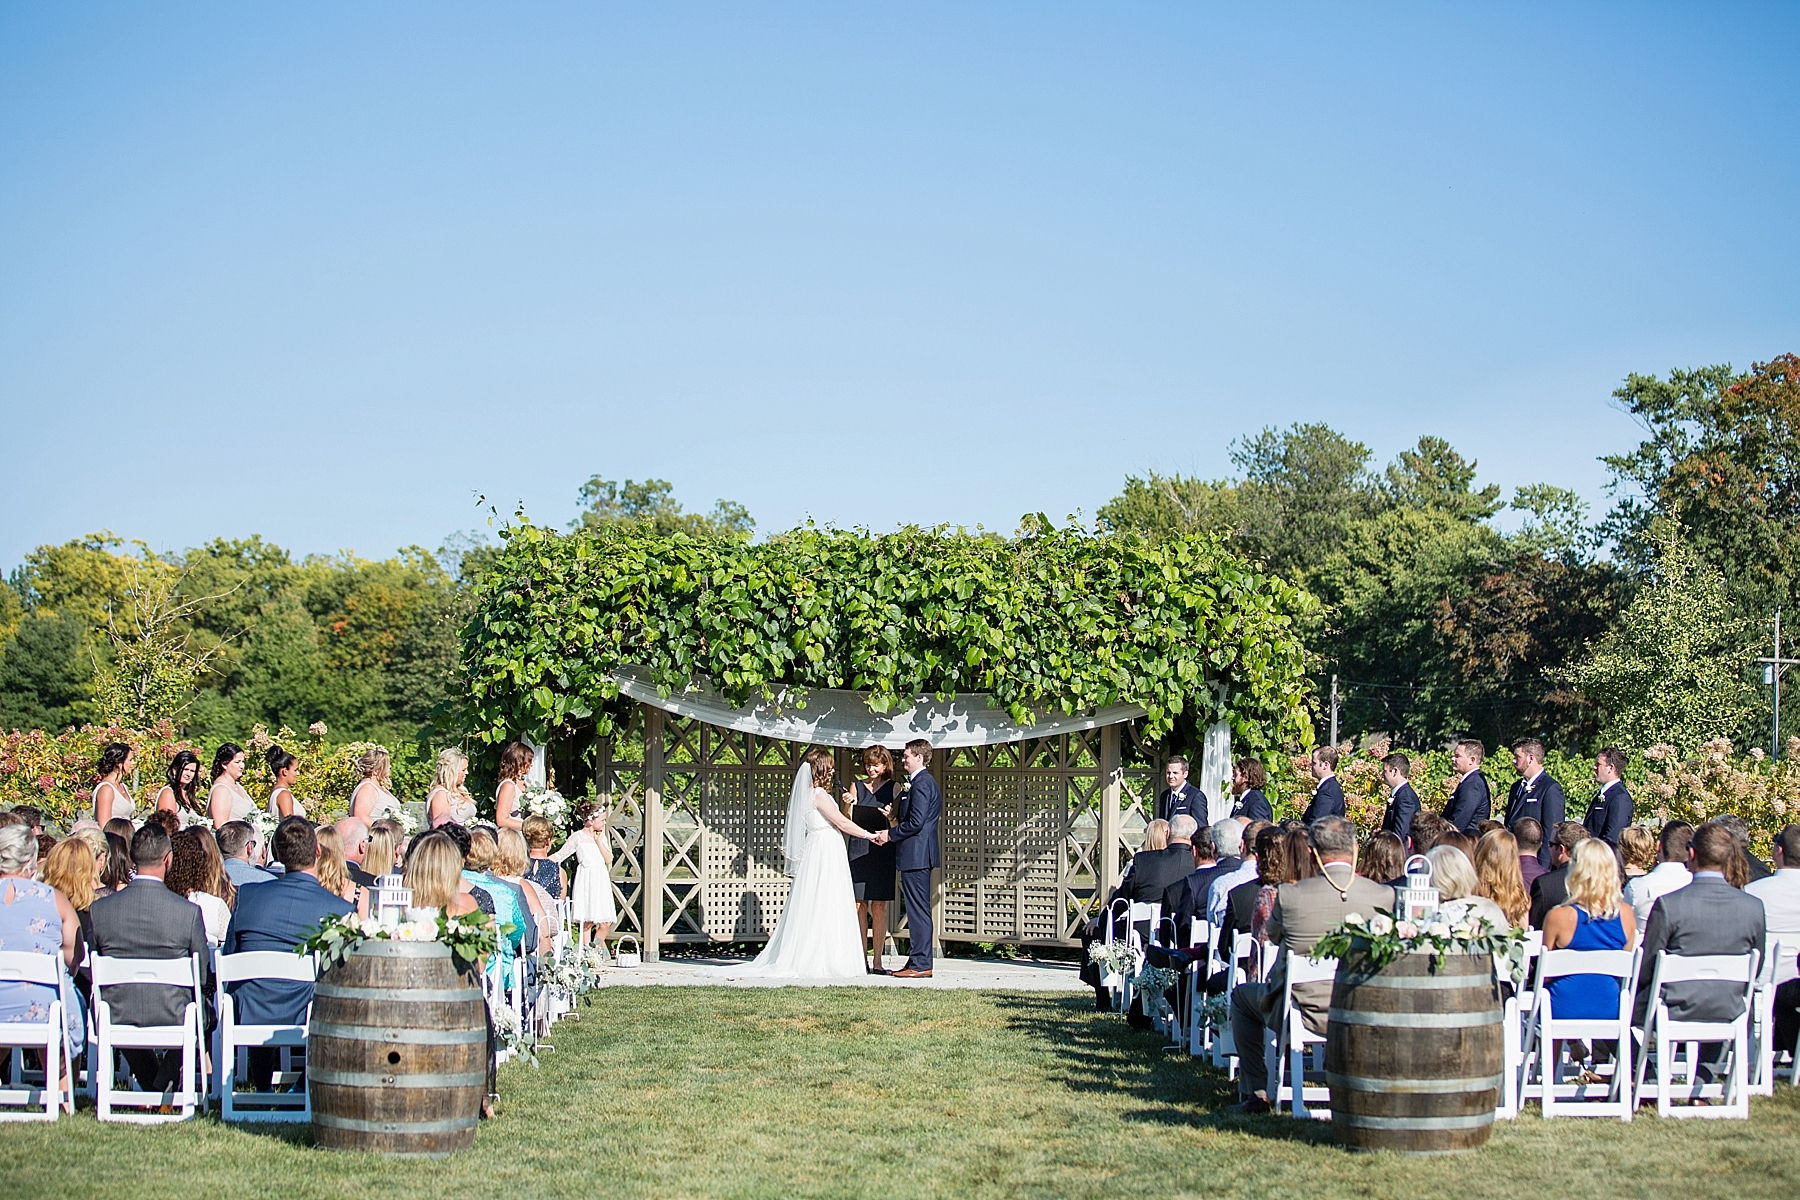 windsor-wedding-photographer-oxley-estate-winery-wedding-ontario-little-bird-event-planning-photography-niagara-on-the-lake-eryn-shea-photography_0065.jpg